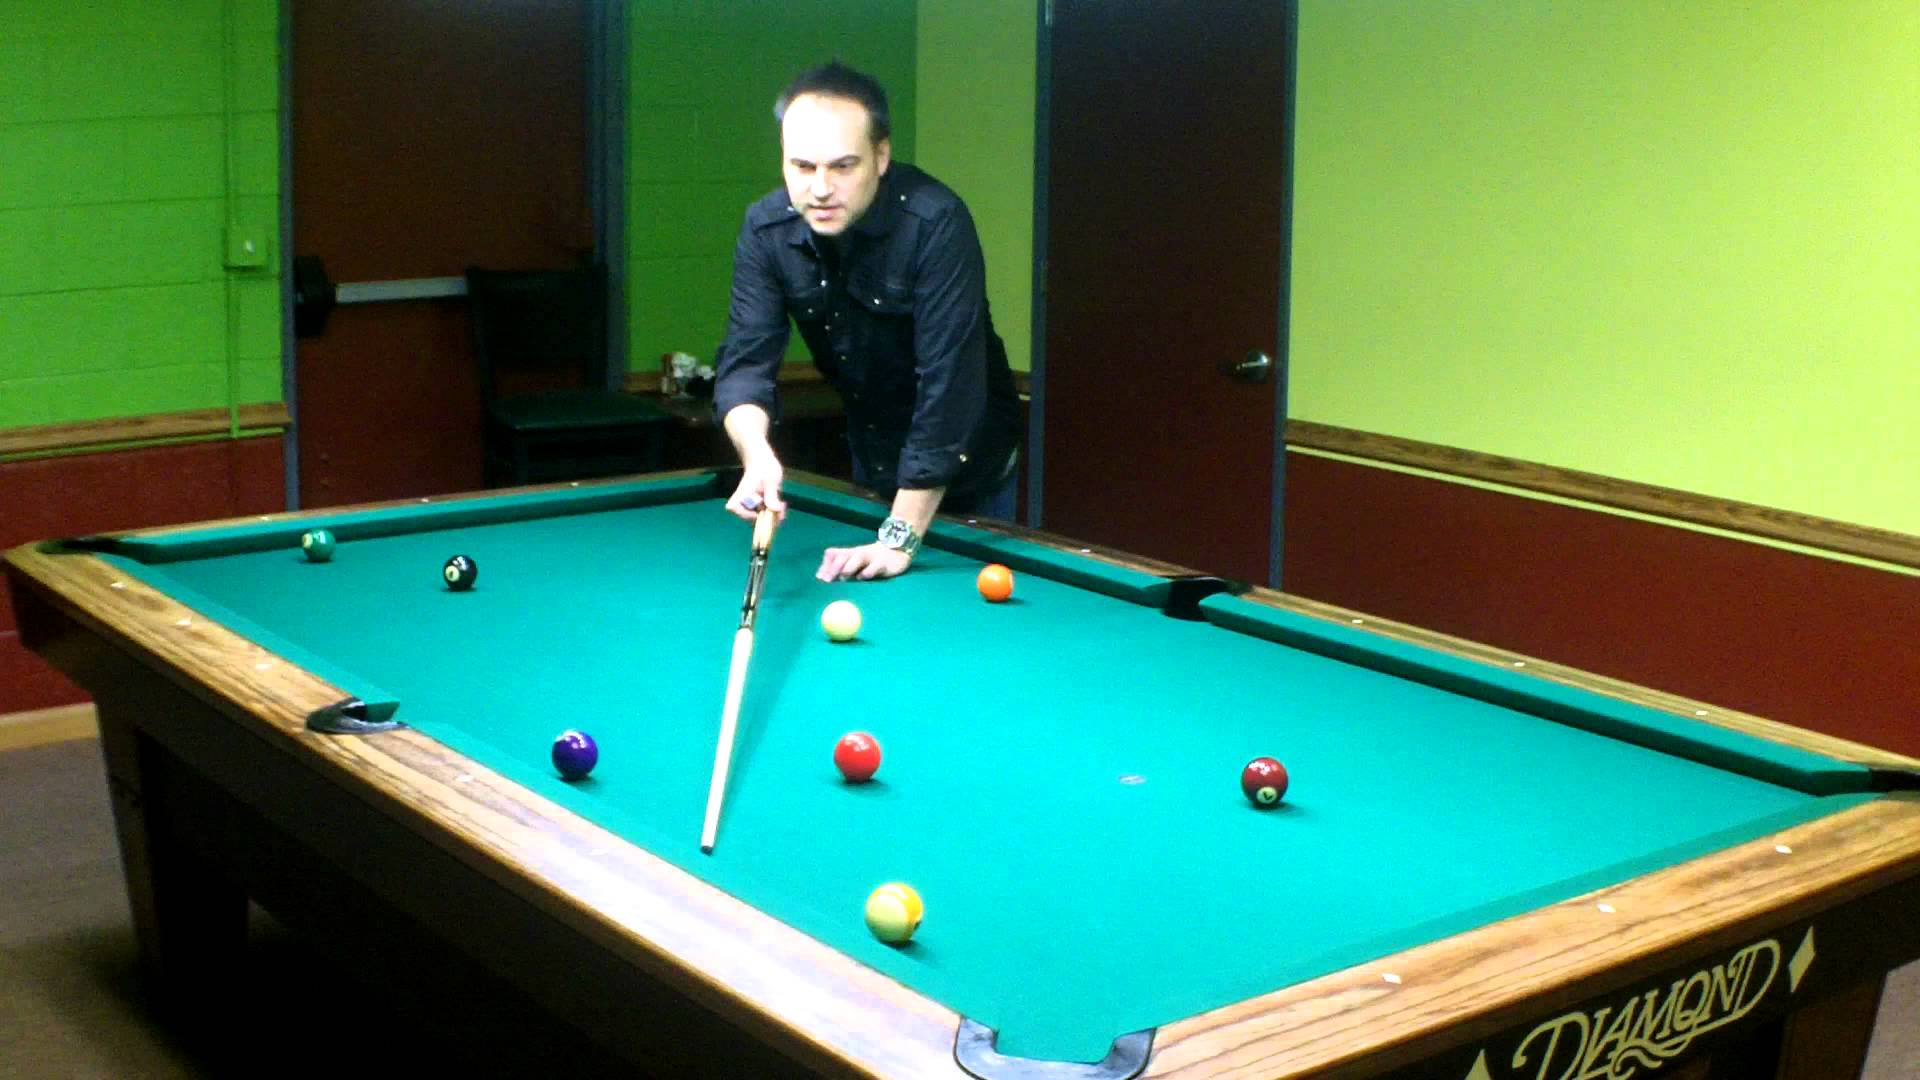 Max Eberle 9-ball Coaching #4